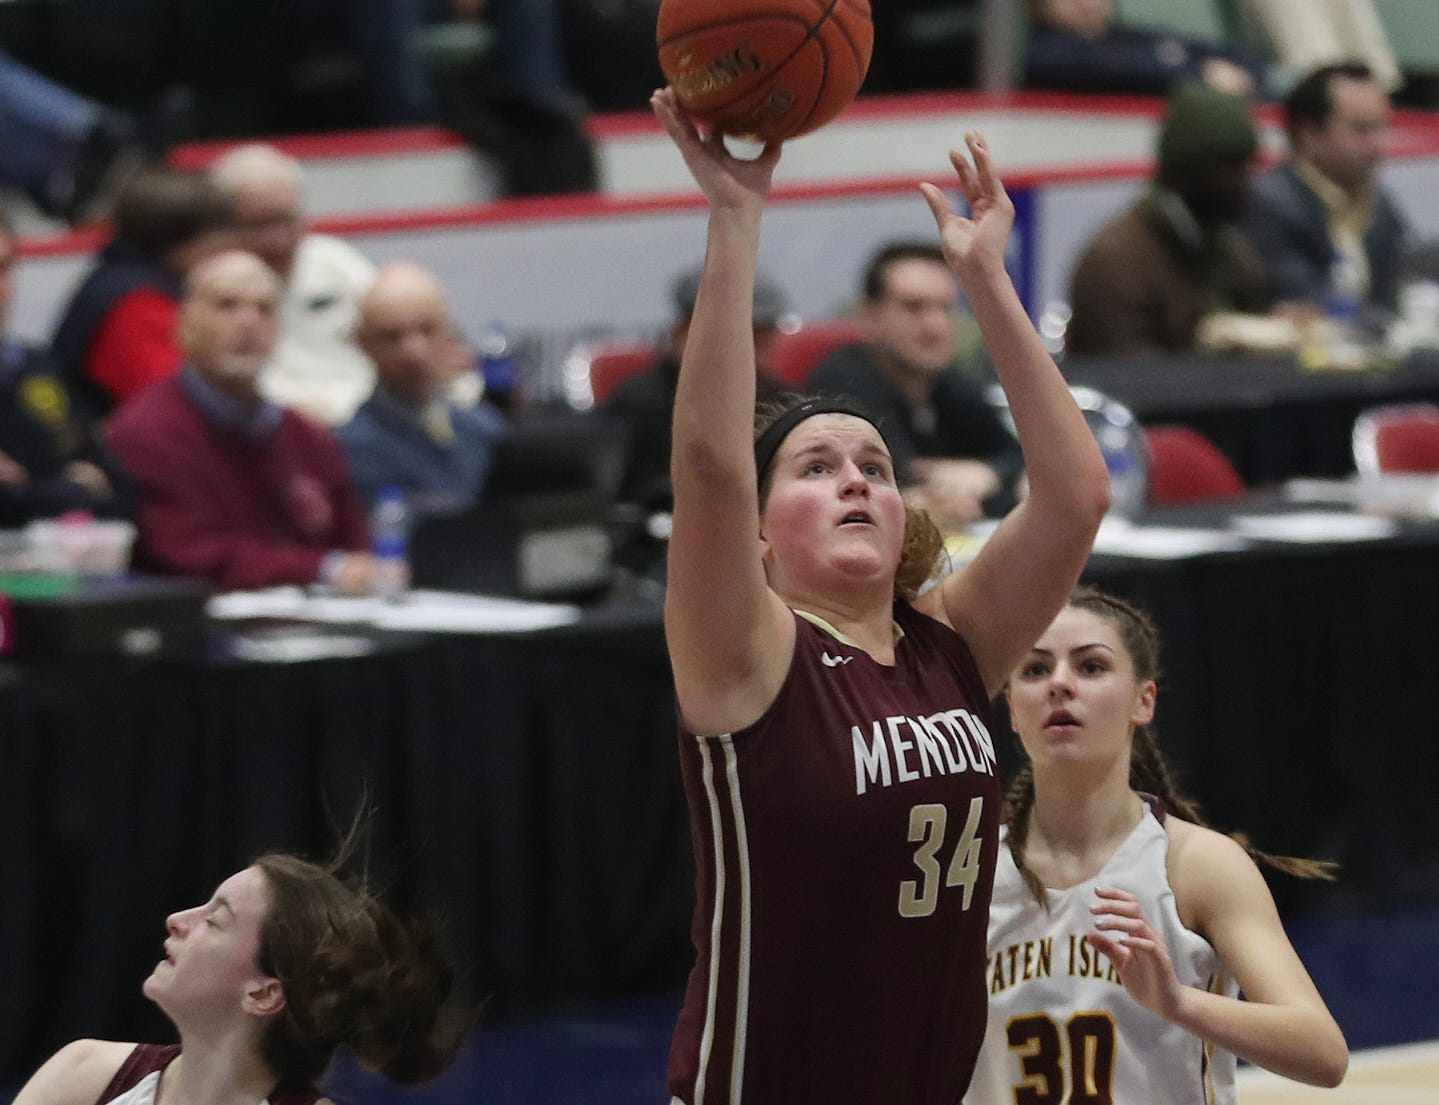 Pittsford Mendon's Maddy Mike (34) goes up for a shot against Staten Island in the championship game of the Federation Tournament at the Cool Insuring Arena in Glens Falls March 23, 2019.